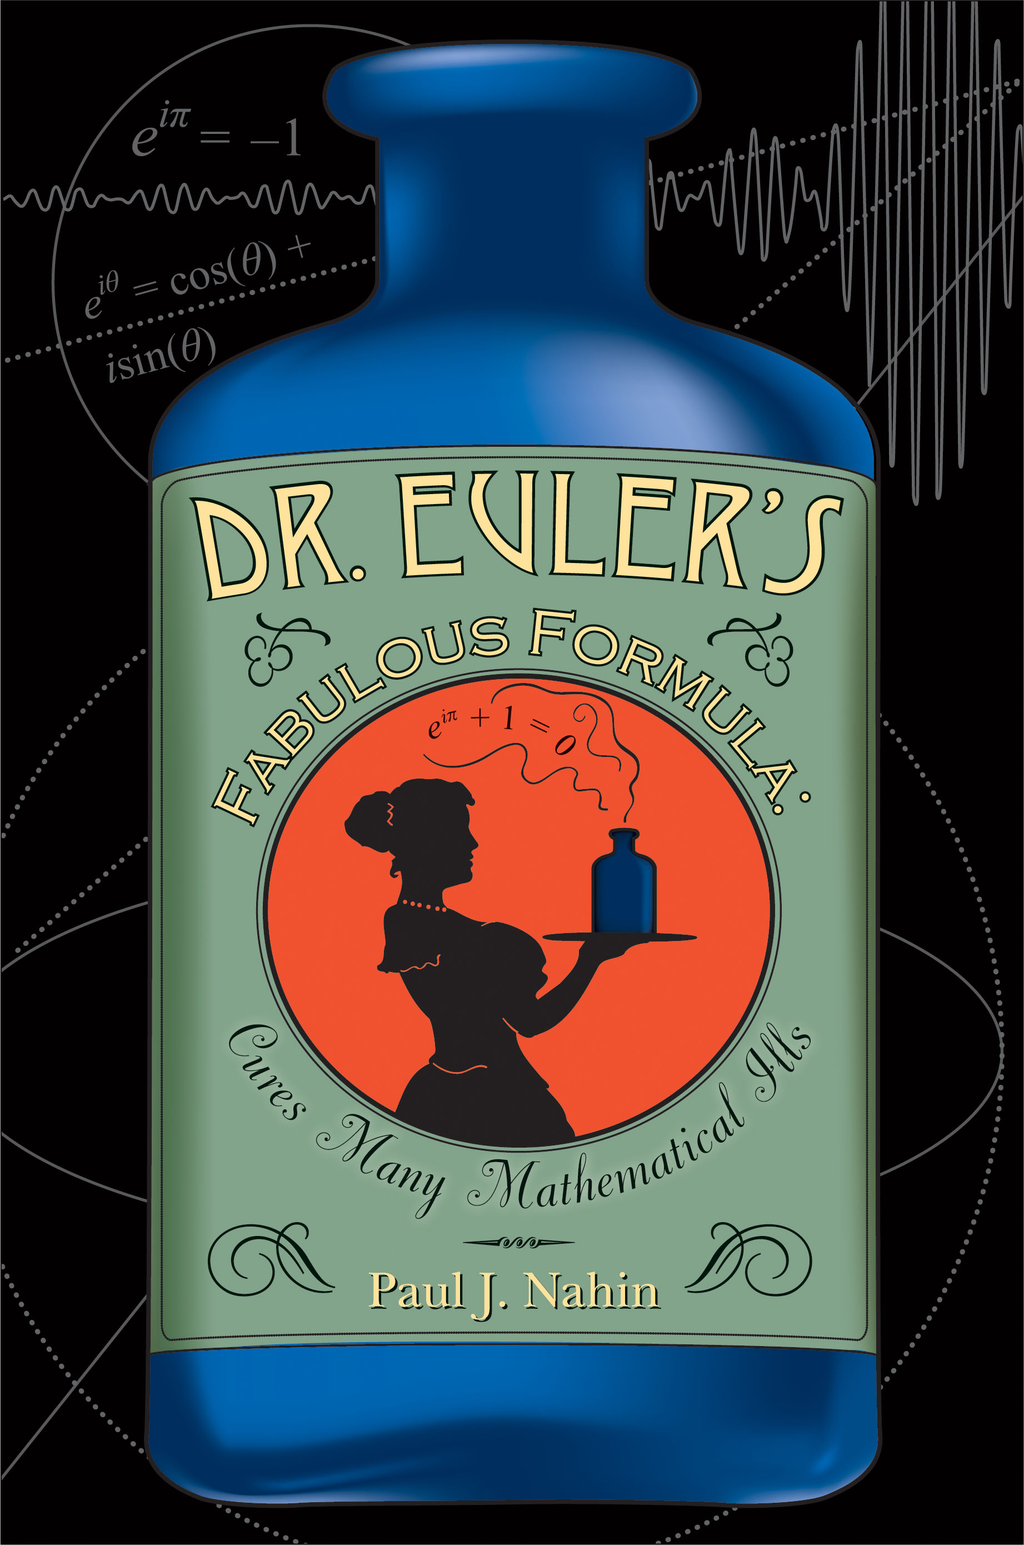 Dr. Euler's Fabulous Formula Cures Many Mathematical Ills